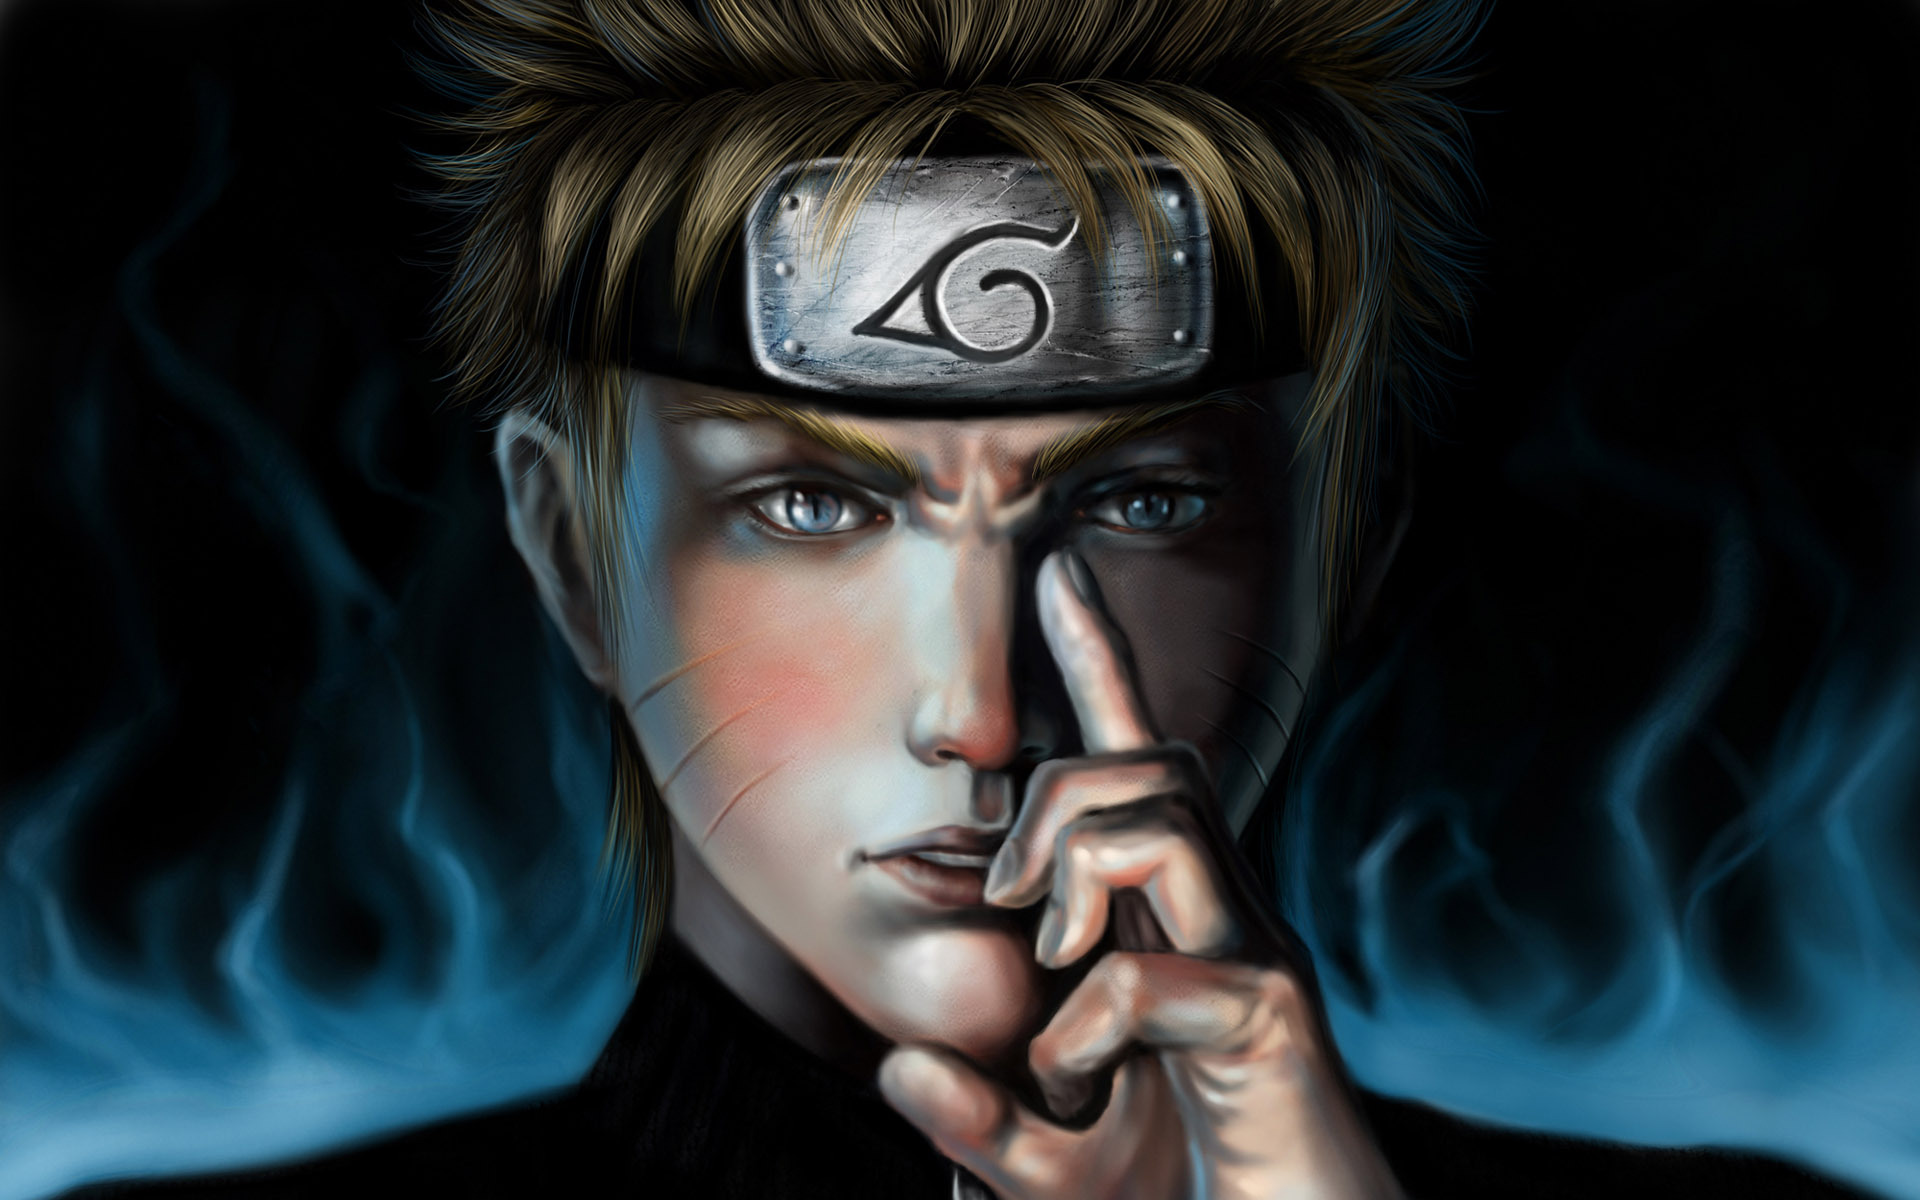 Most Inspiring Wallpaper High Resolution Naruto - 1452_naruto_uzumaki  You Should Have_58533.jpg